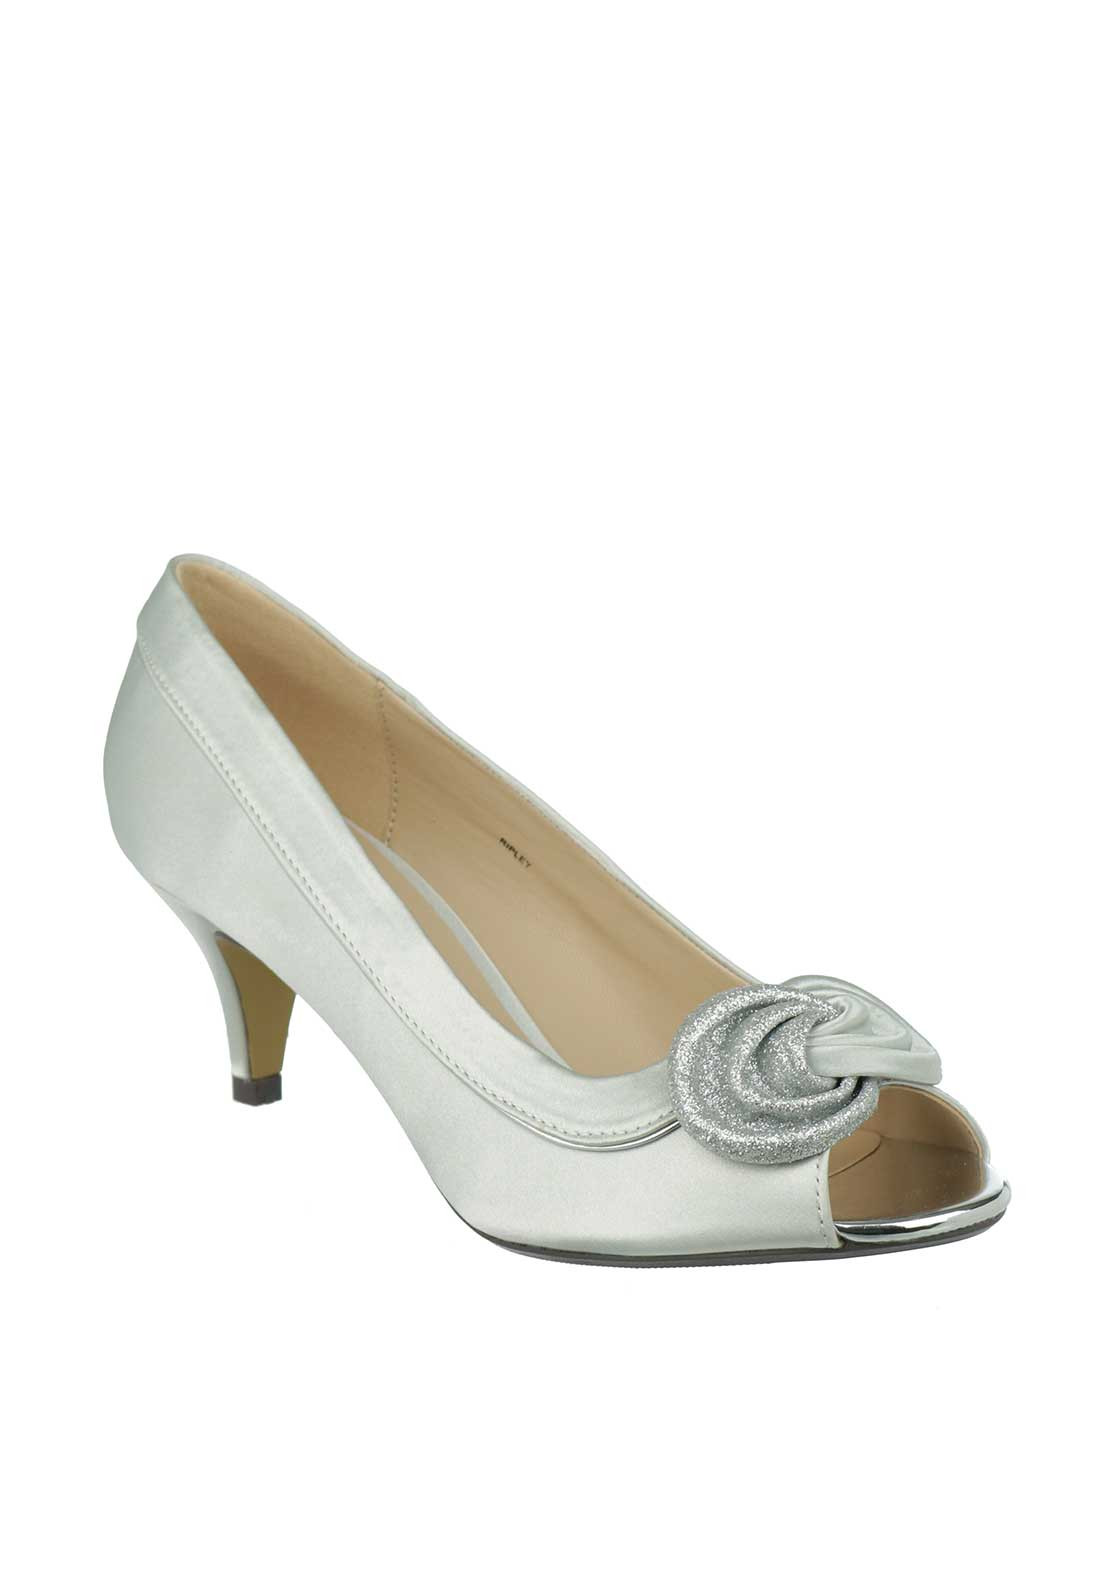 Lunar Elegance Riple Satin Heeled Shoes, Silver